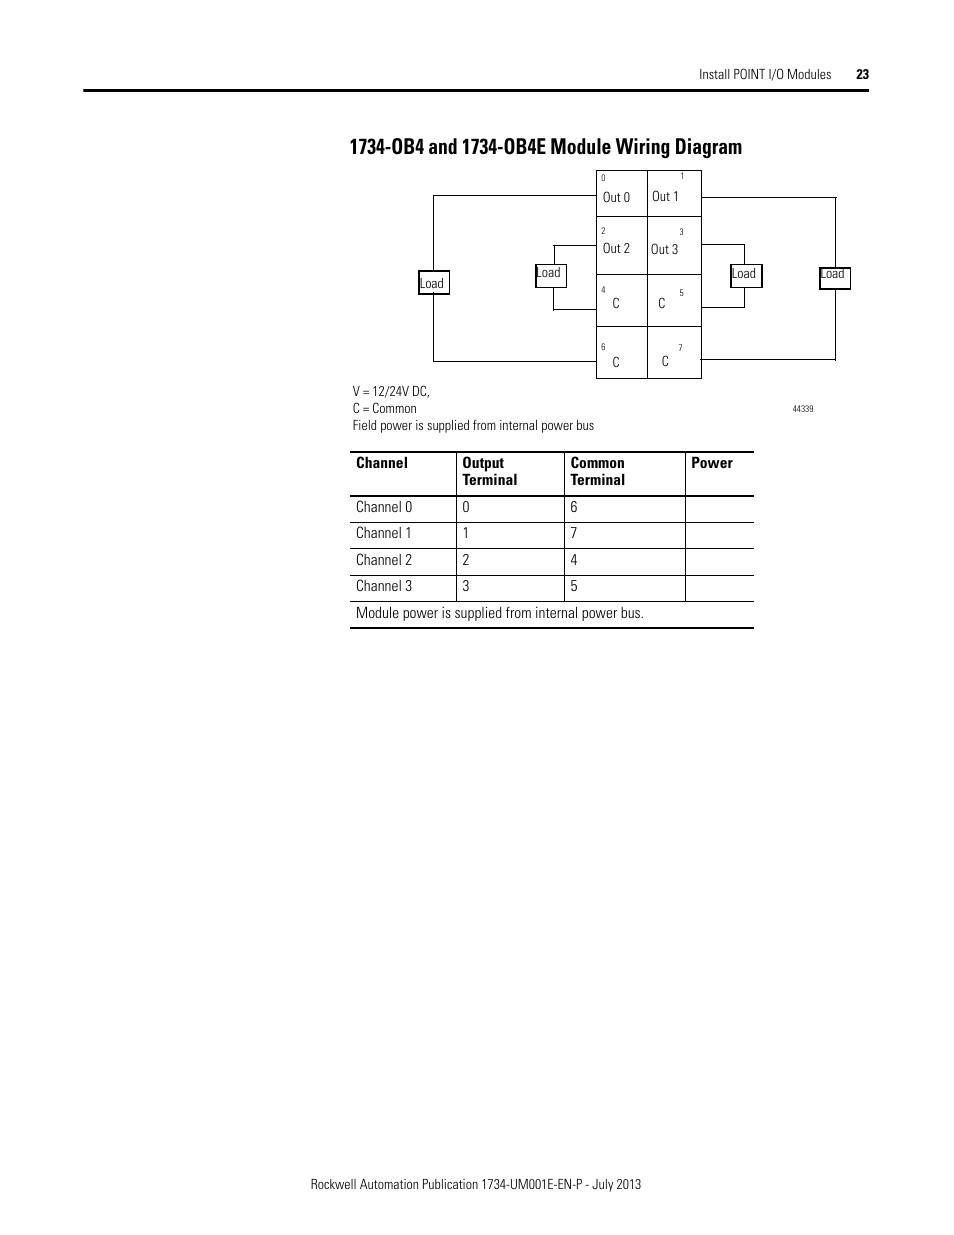 hight resolution of 1734 ob4 and 1734 ob4e module wiring diagram rockwell automation 1734 xxxx point i o digital and analog modules and pointblock i o modules user manual